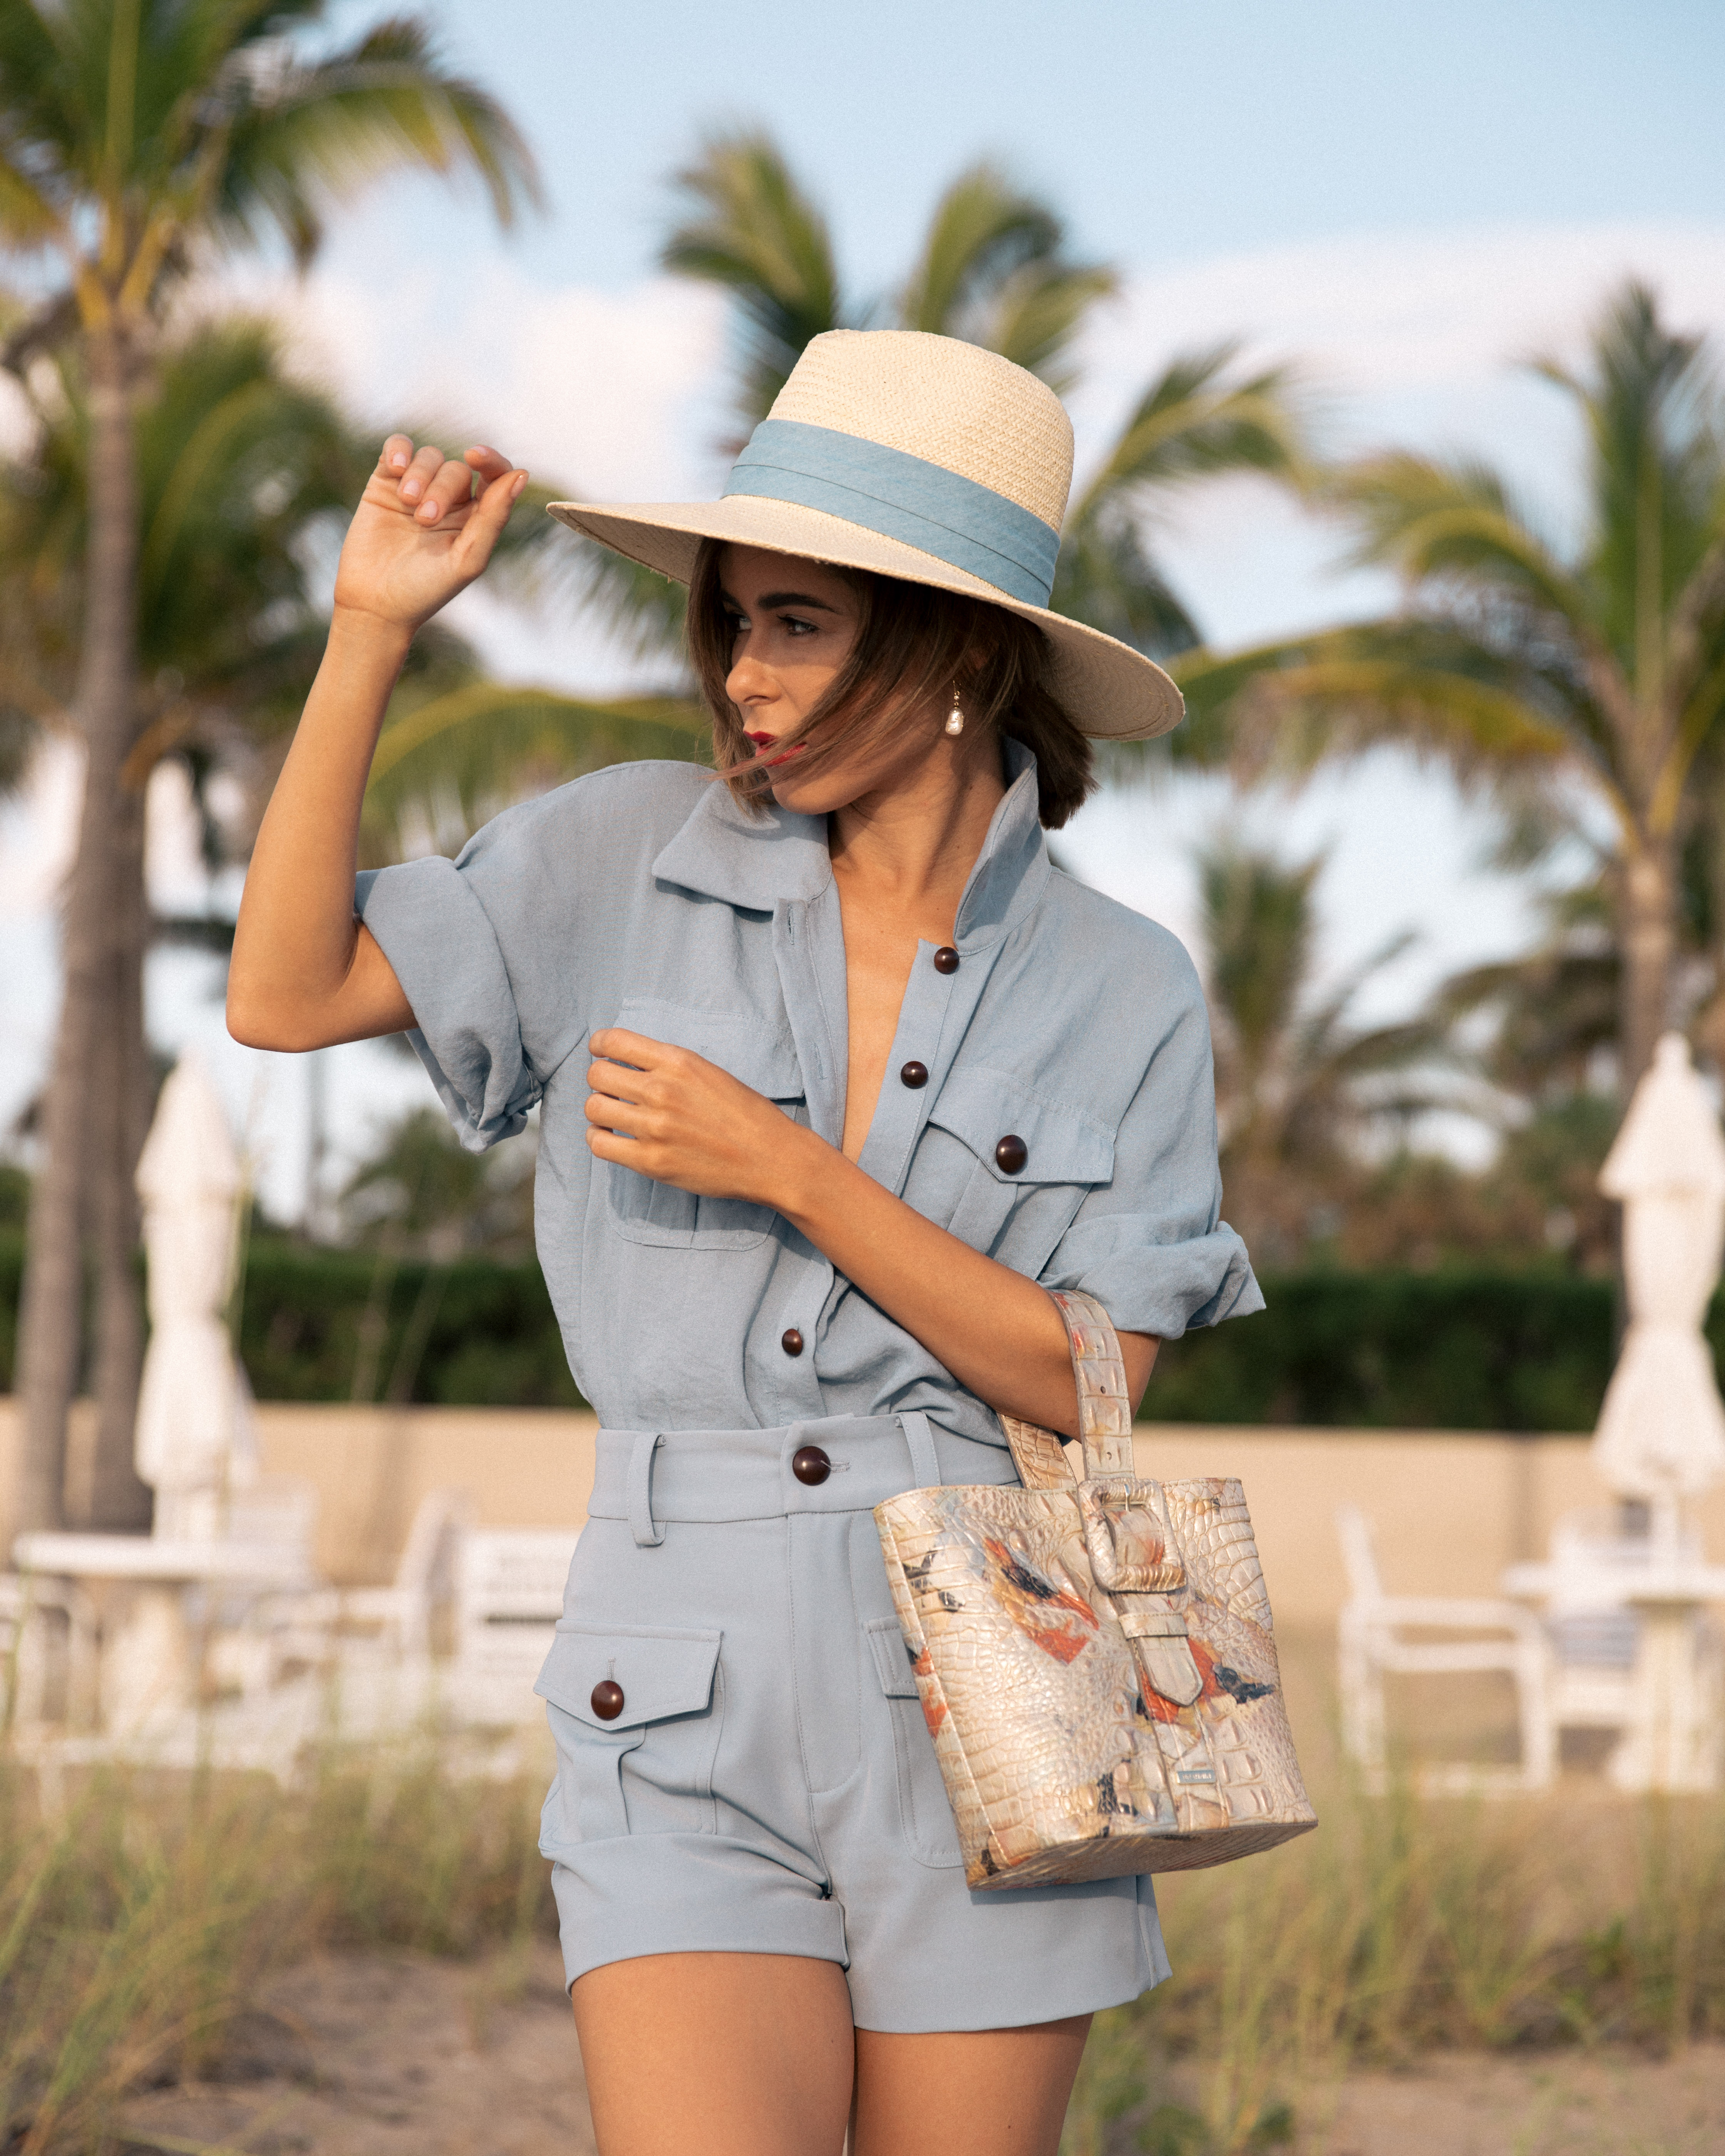 Blogger Stephanie Hill on The Style Bungalow's From Hot to Hotter Brahmin